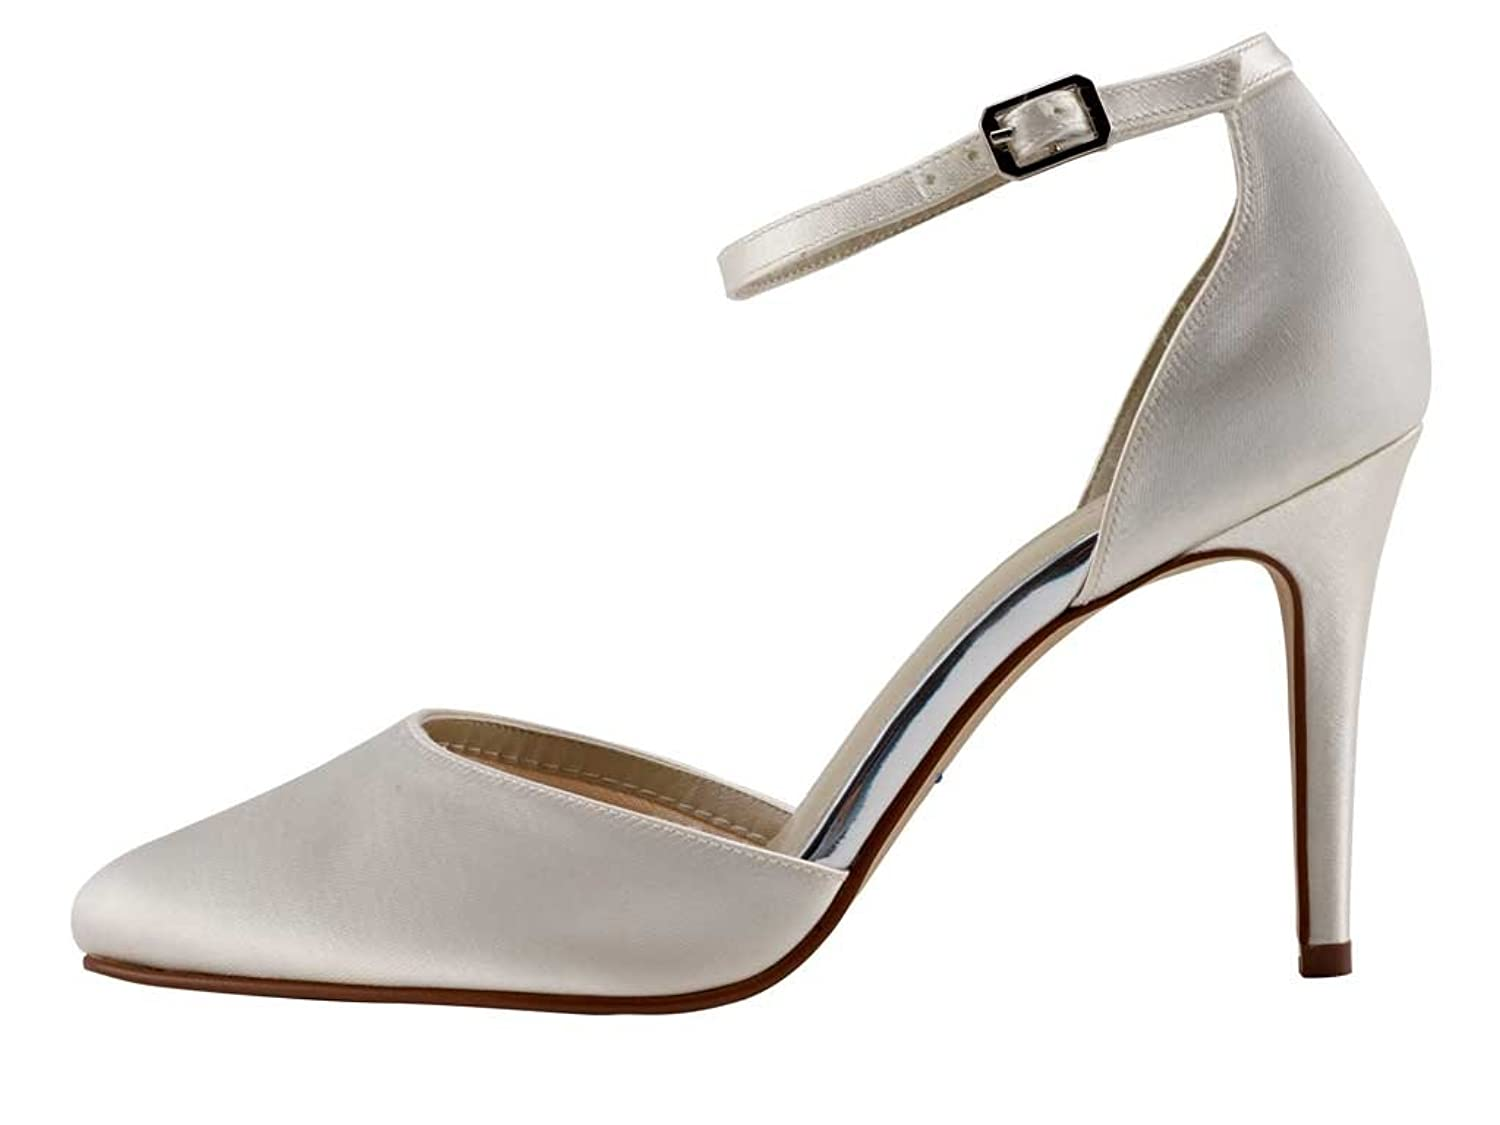 Rainbow Club Carly - Ivory Satin High Heel Bridal Court Shoe with Ankle  Strap: Amazon.co.uk: Shoes & Bags